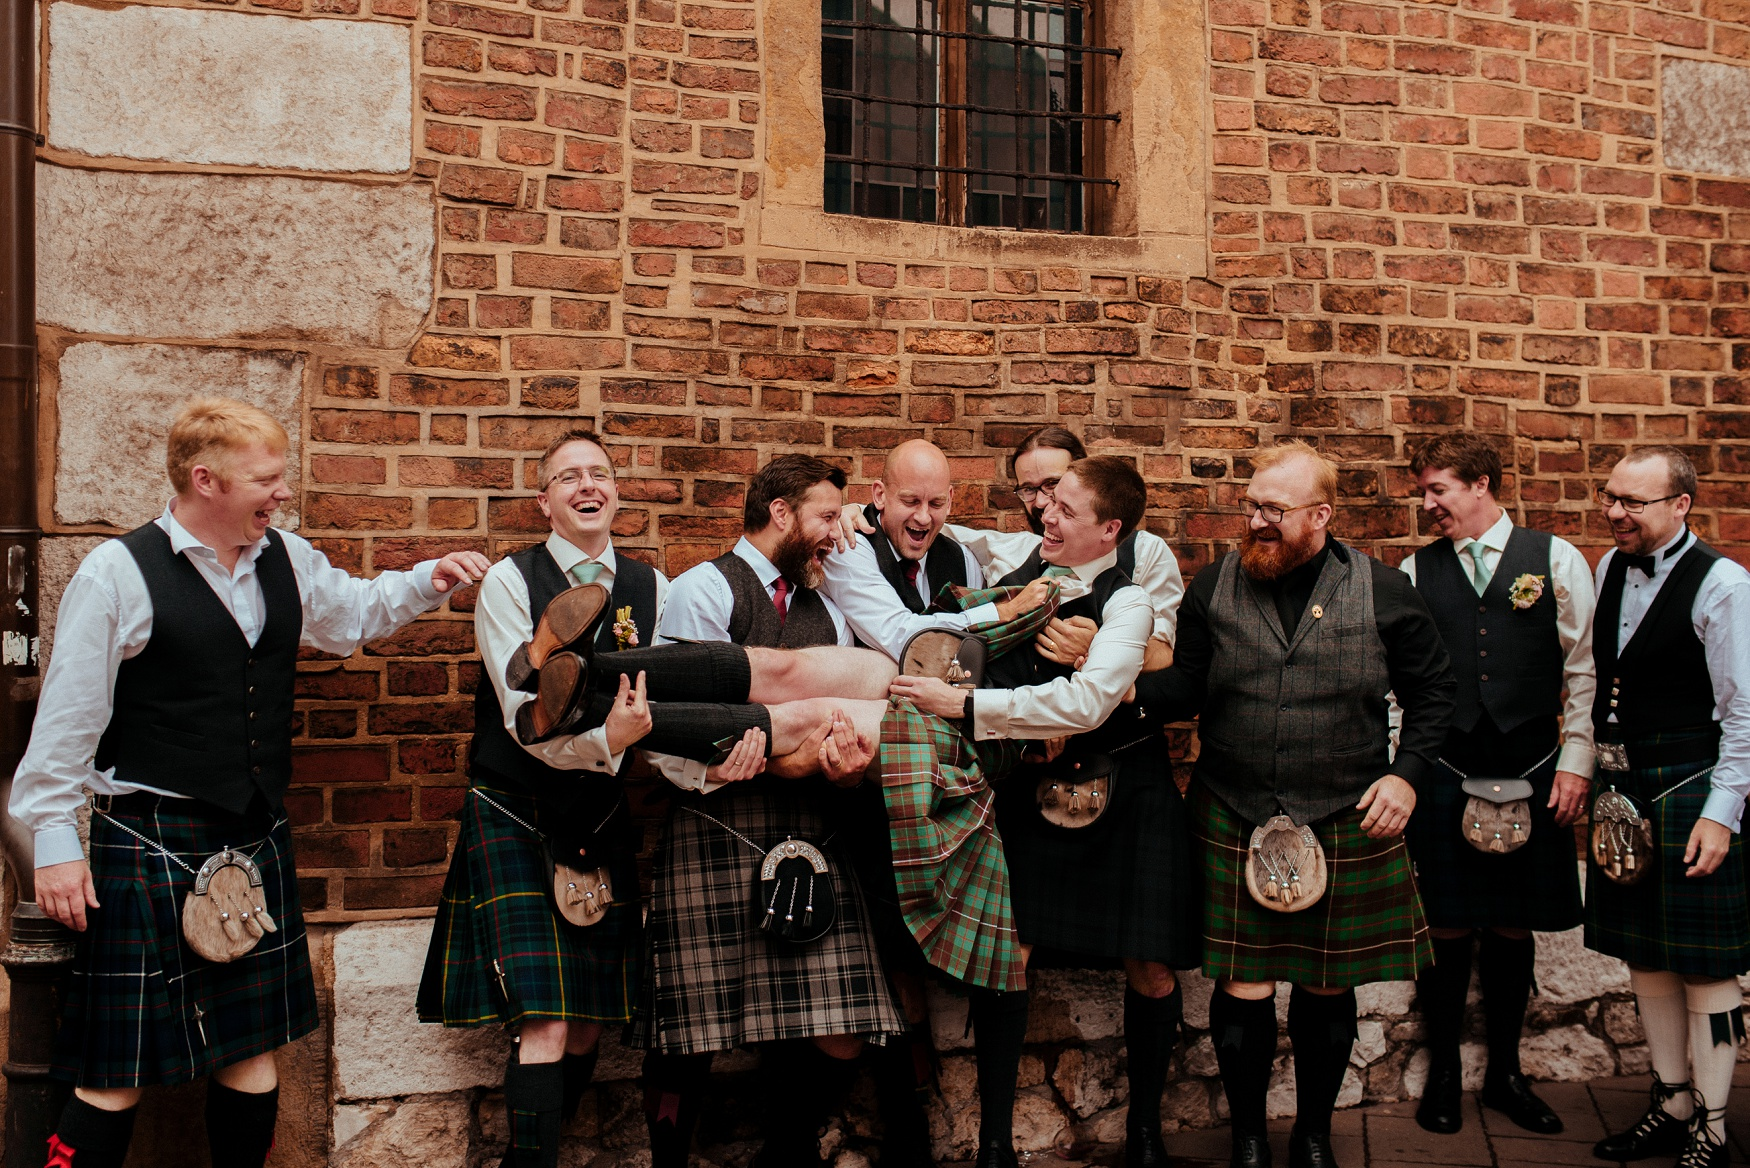 bestof2016_066 scottish wedding in krakow.jpg